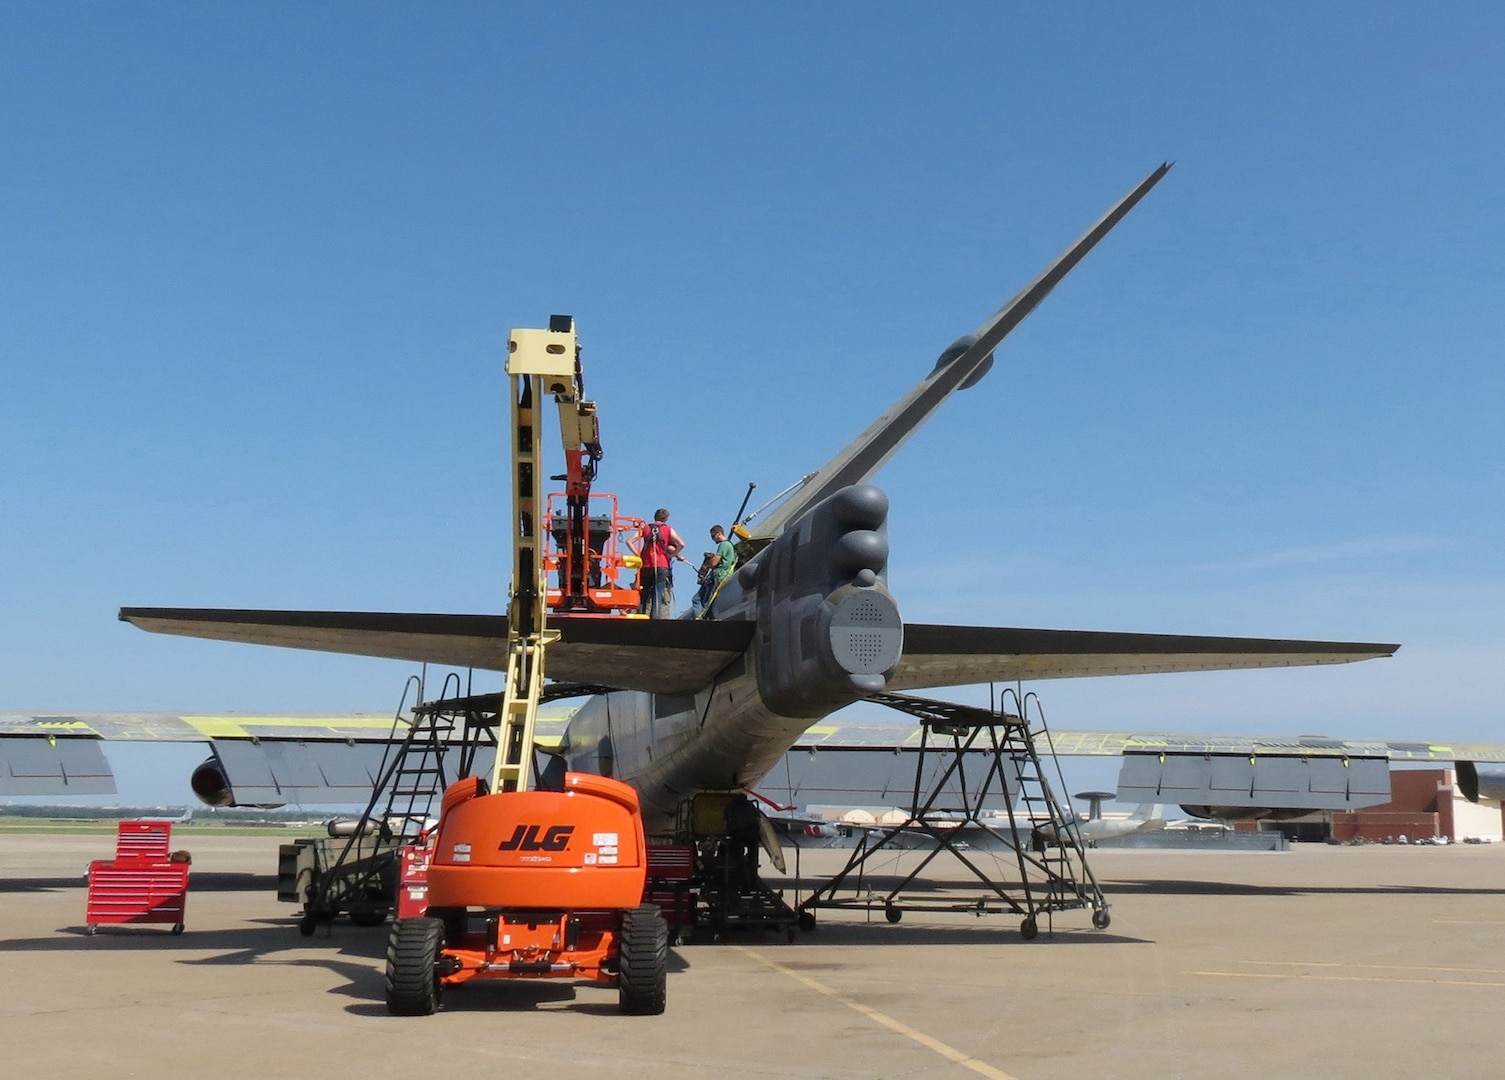 """Members of the 565th Aircraft Maintenance Squadron reattach the tail on """"Ghost Rider"""" July 31, 2016. The B-52H Stratofortress, tail number 61-007, recently underwent extensive programmed depot maintenance at Tinker Air Force Base. 'Ghost Rider' is the first B-52H to ever be regenerated from long-term storage with the 309th Aerospace Maintenance and Regeneration Group at Davis-Monthan AFB, Ariz., and returned to fully-operational flying status. (Air Force photo)"""